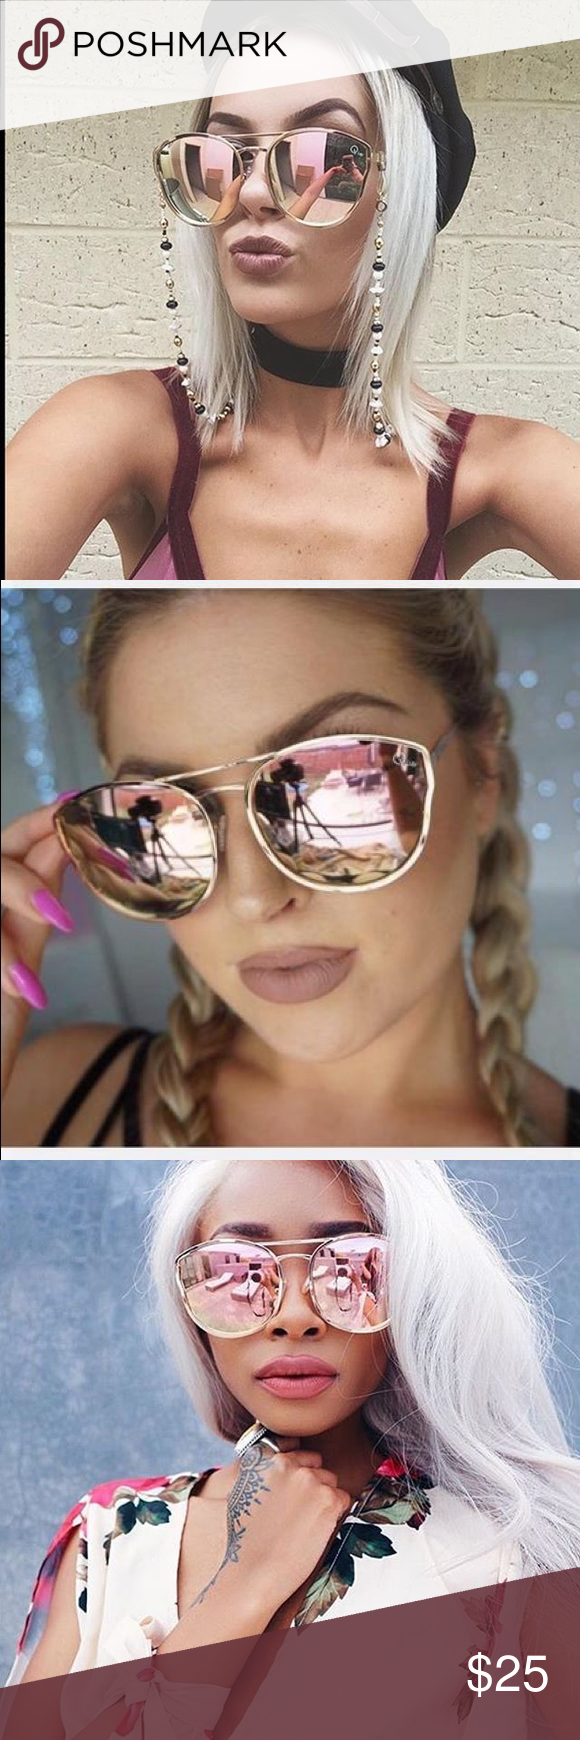 6765afc841cc0 QUAY Australia Cherry Bomb Sunglasses Rose gold  pink QUAY Australia  sunnies. Has a green reflect in some light as well! Worn twice